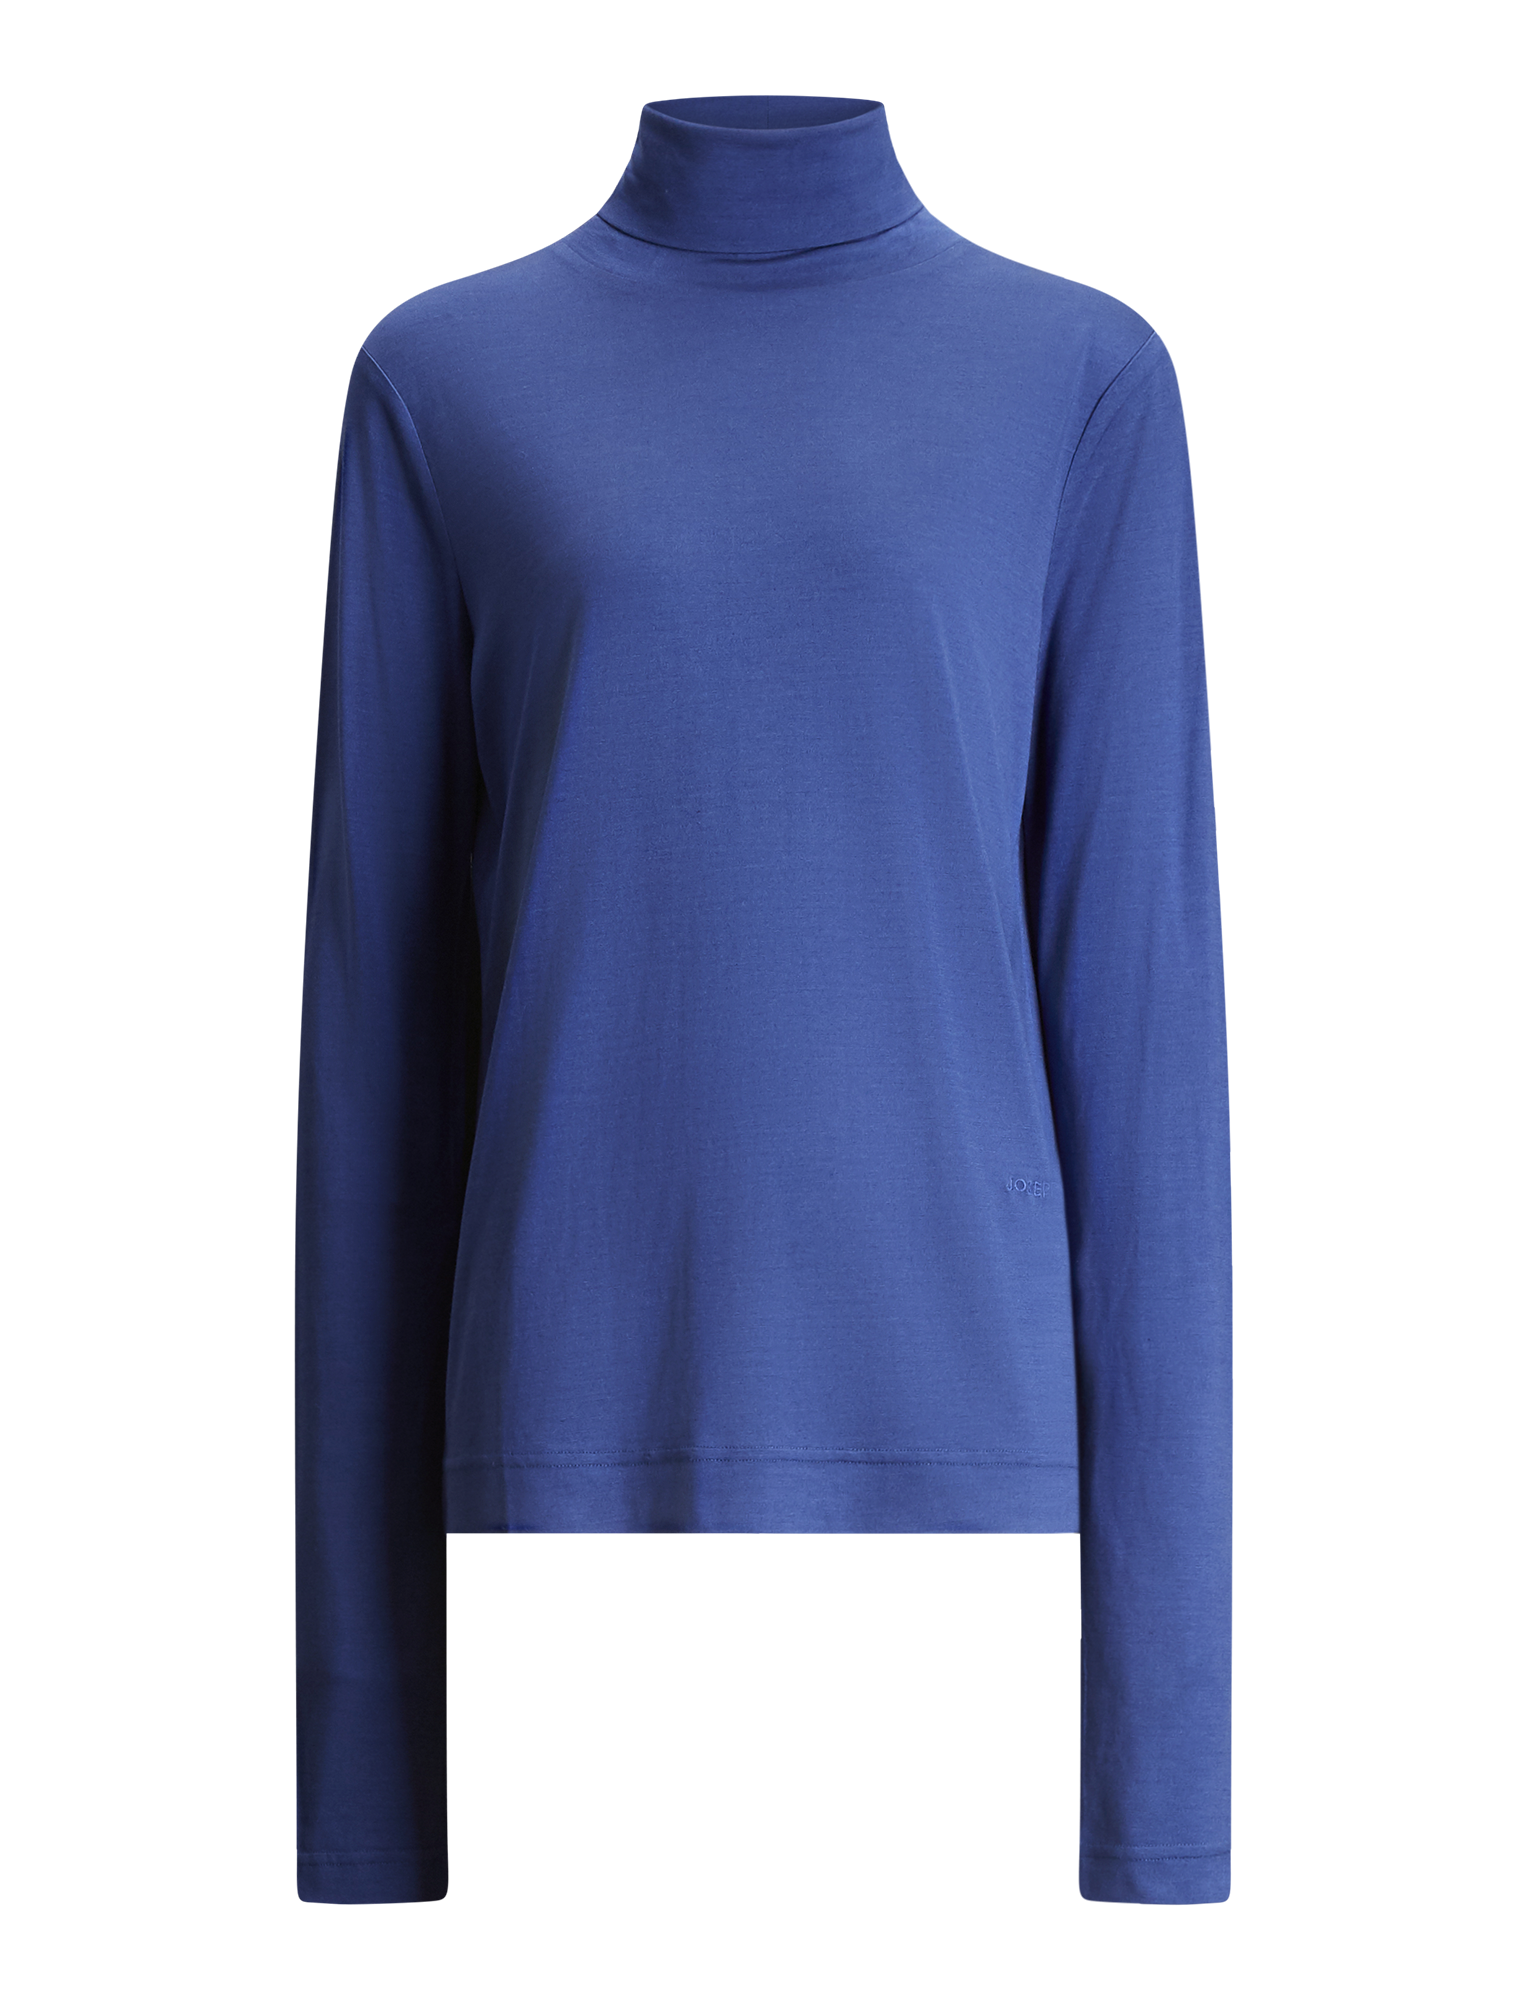 Joseph, Roll Neck Silk Jersey, in SAPHIRE